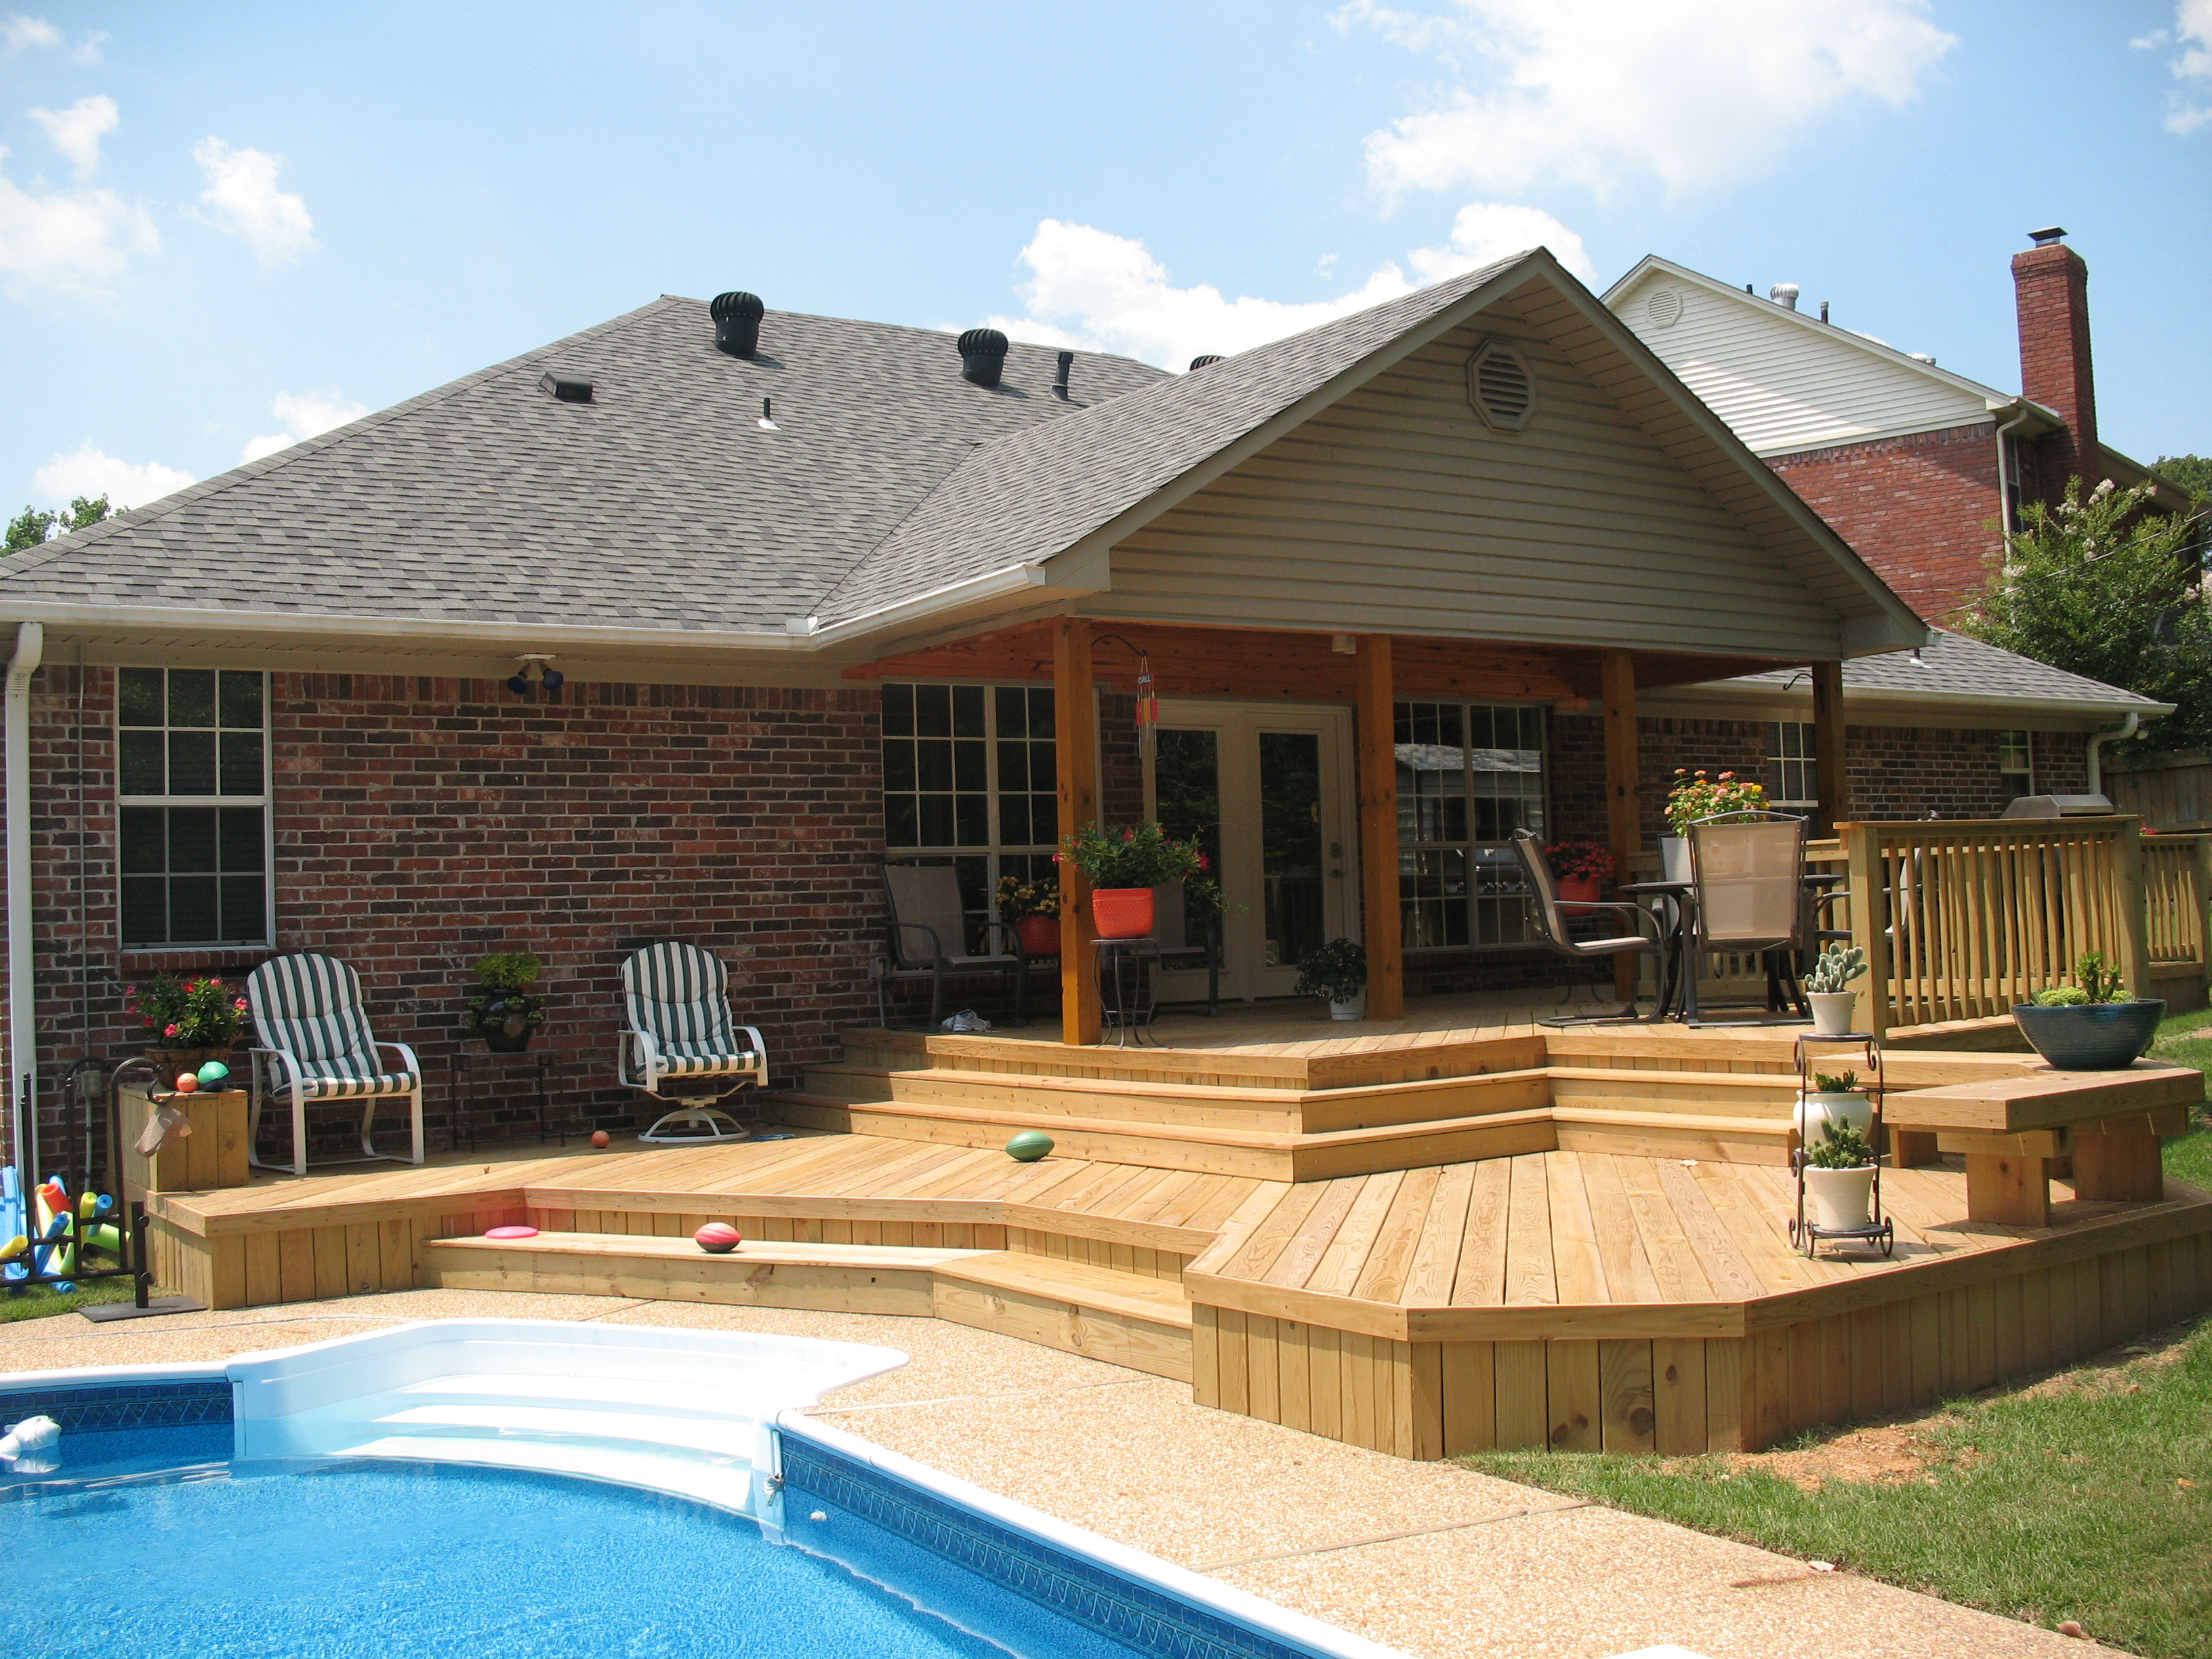 Backyard Pool Deck Ideas deck designs: pool and deck design ideas